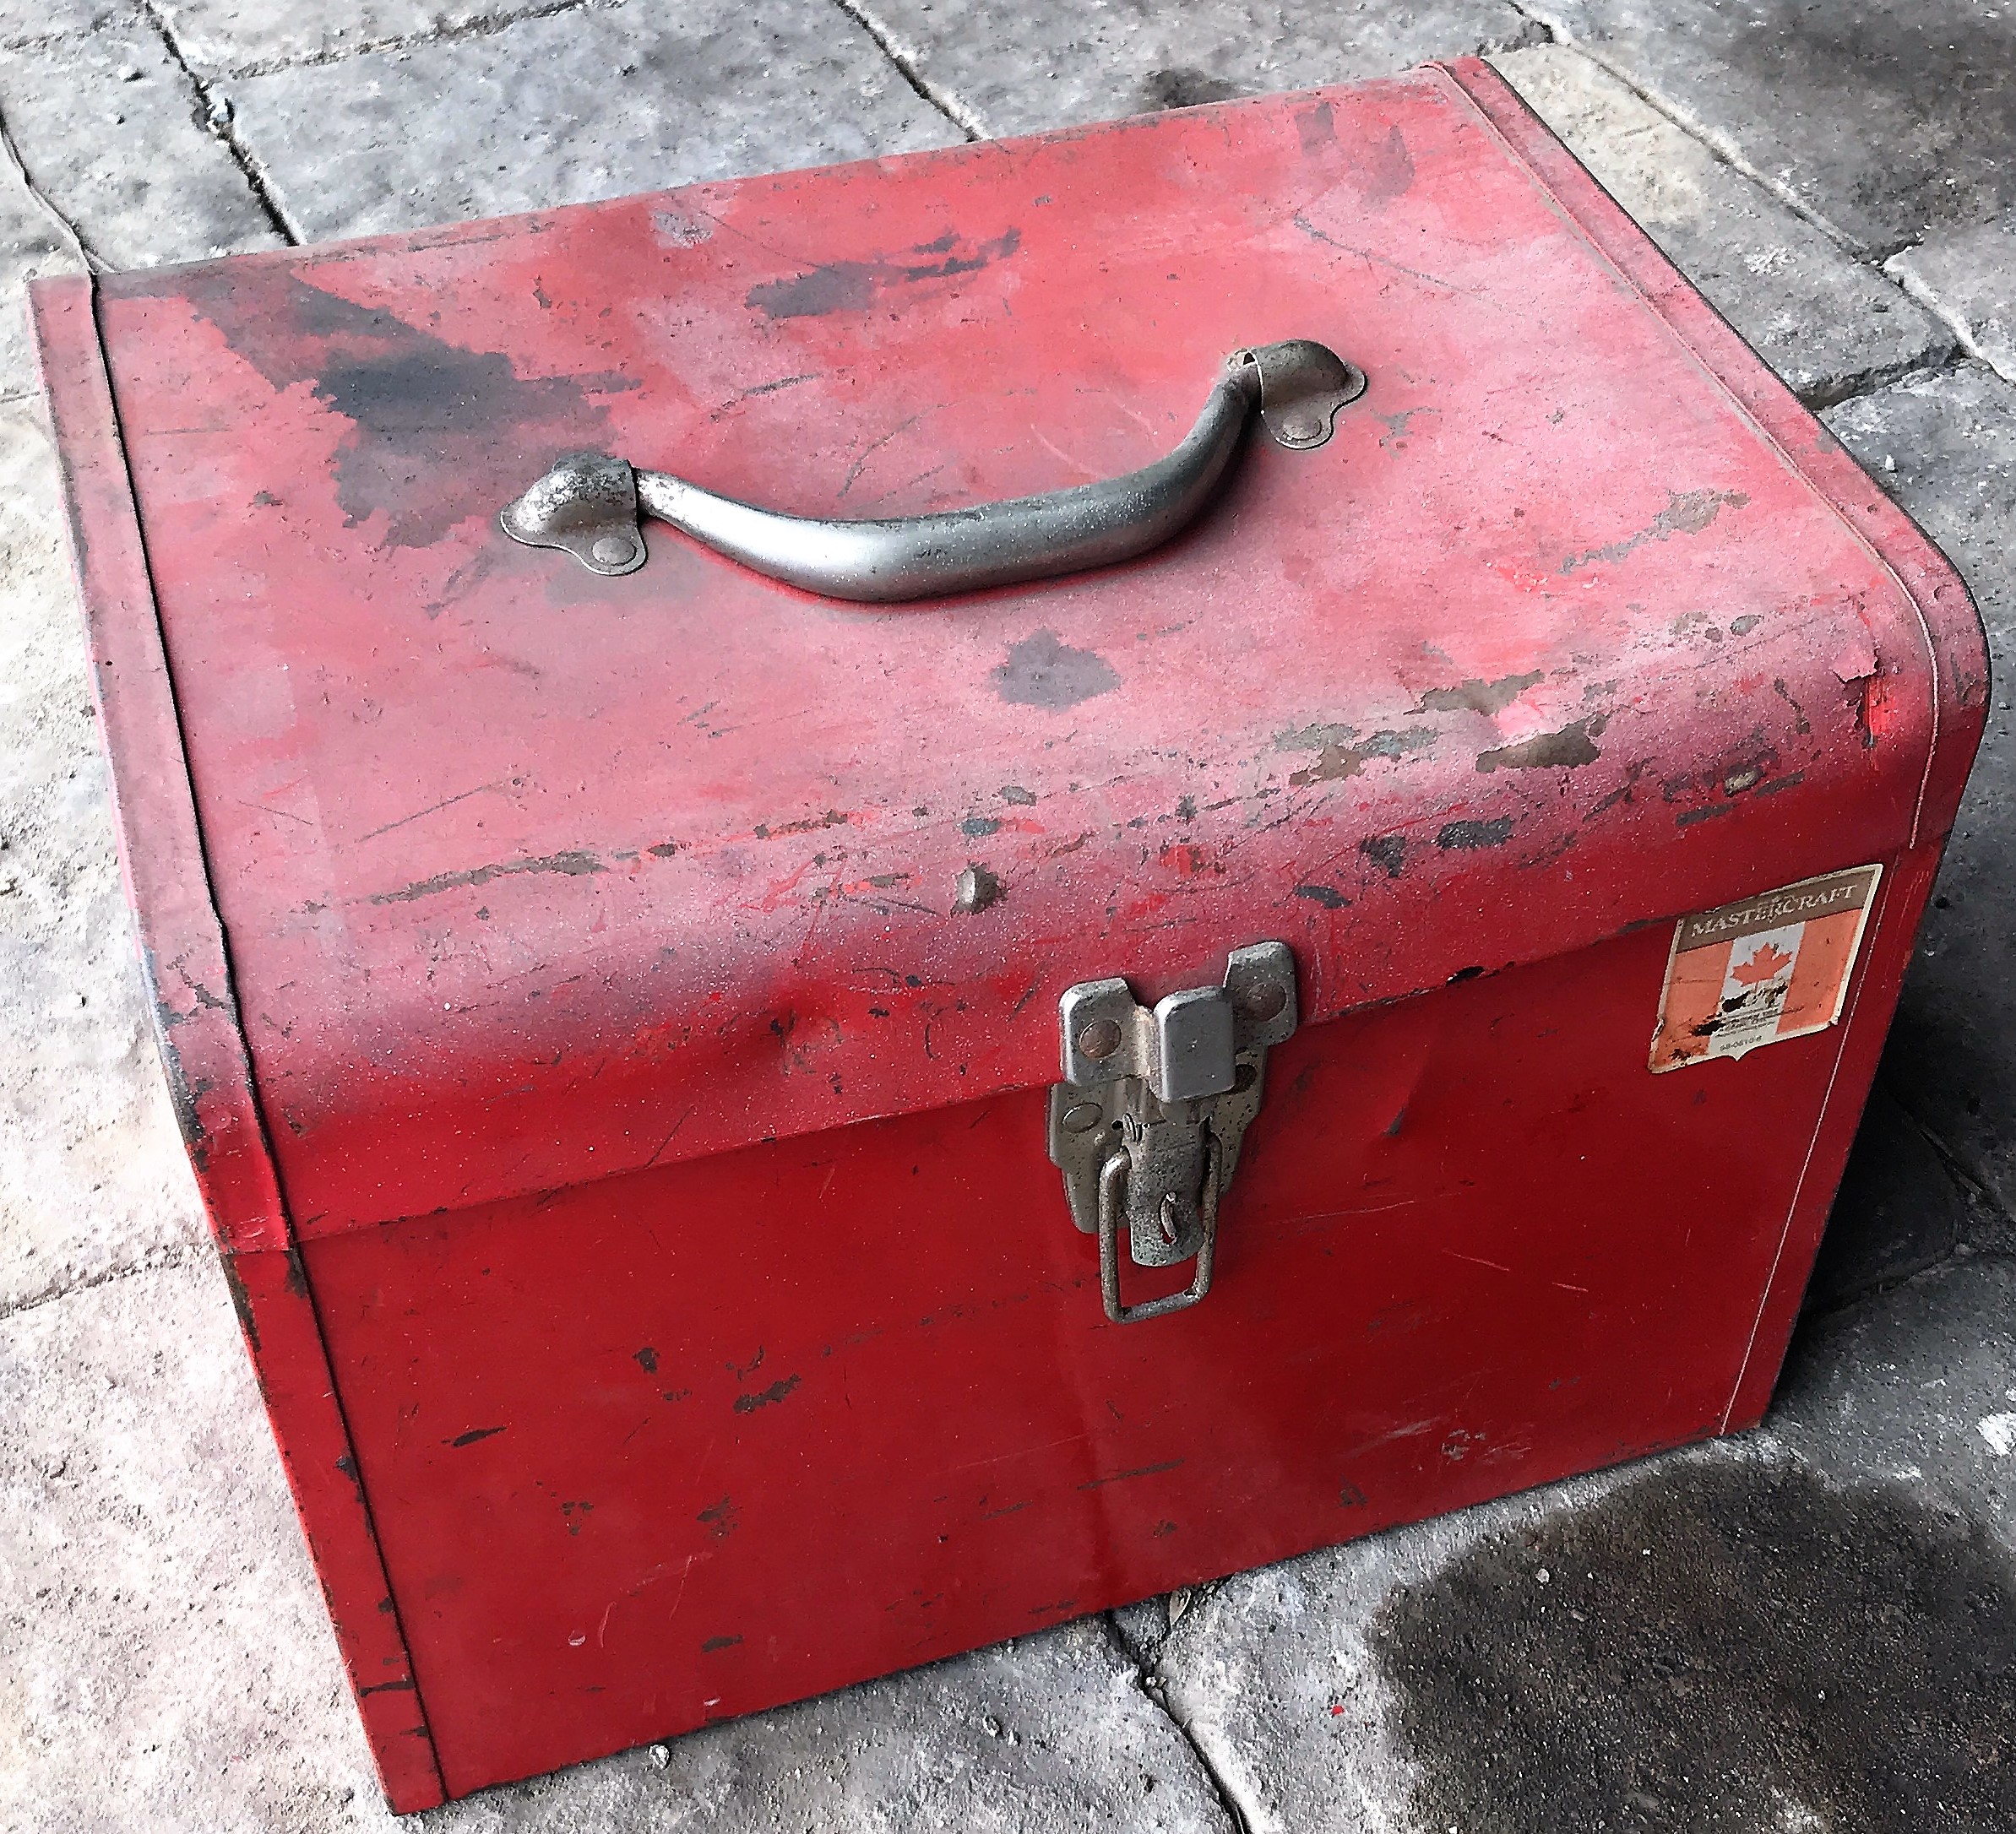 Lot 54 - TOOLBOX W/ CONTENTS INCLUDING WRENCHES, SUPPLIES, ETC.